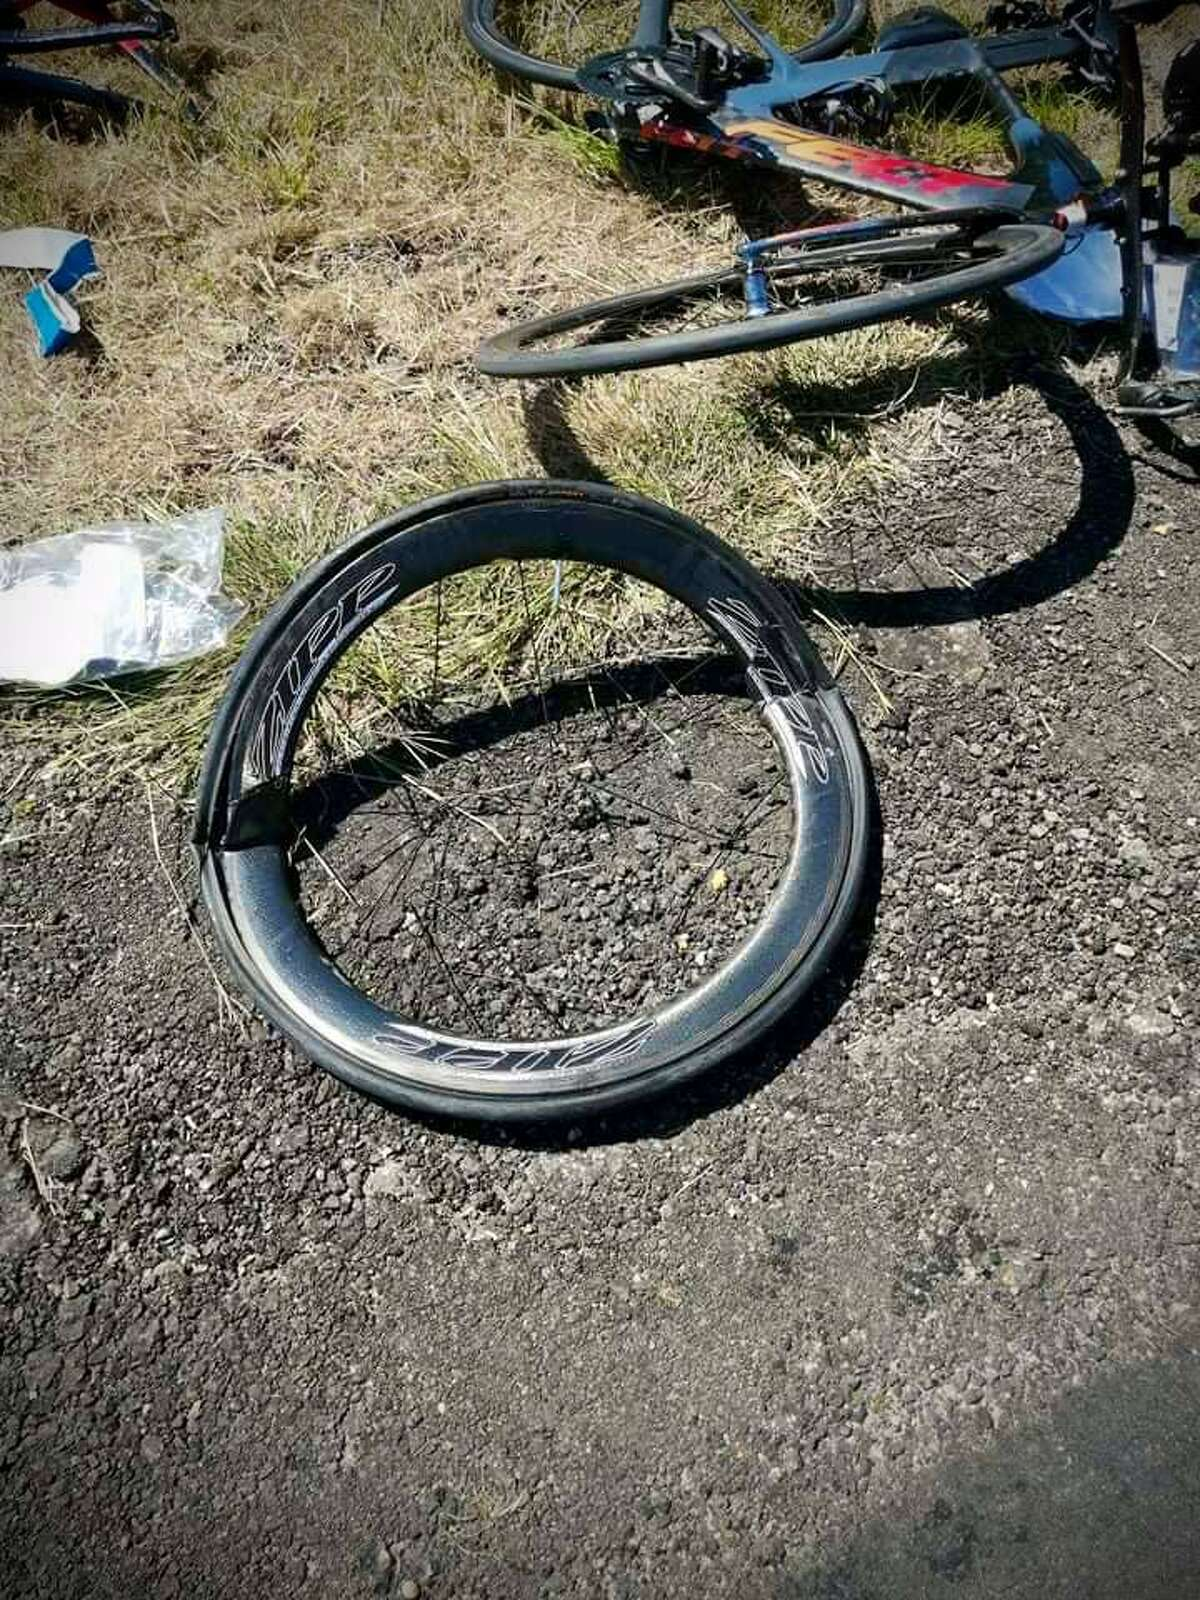 Six bicyclists were injured Sept. 25, 2021, in Waller, Texas, when witnesses say a pickup driver, 16, was intentionally blowing exhaust on them.